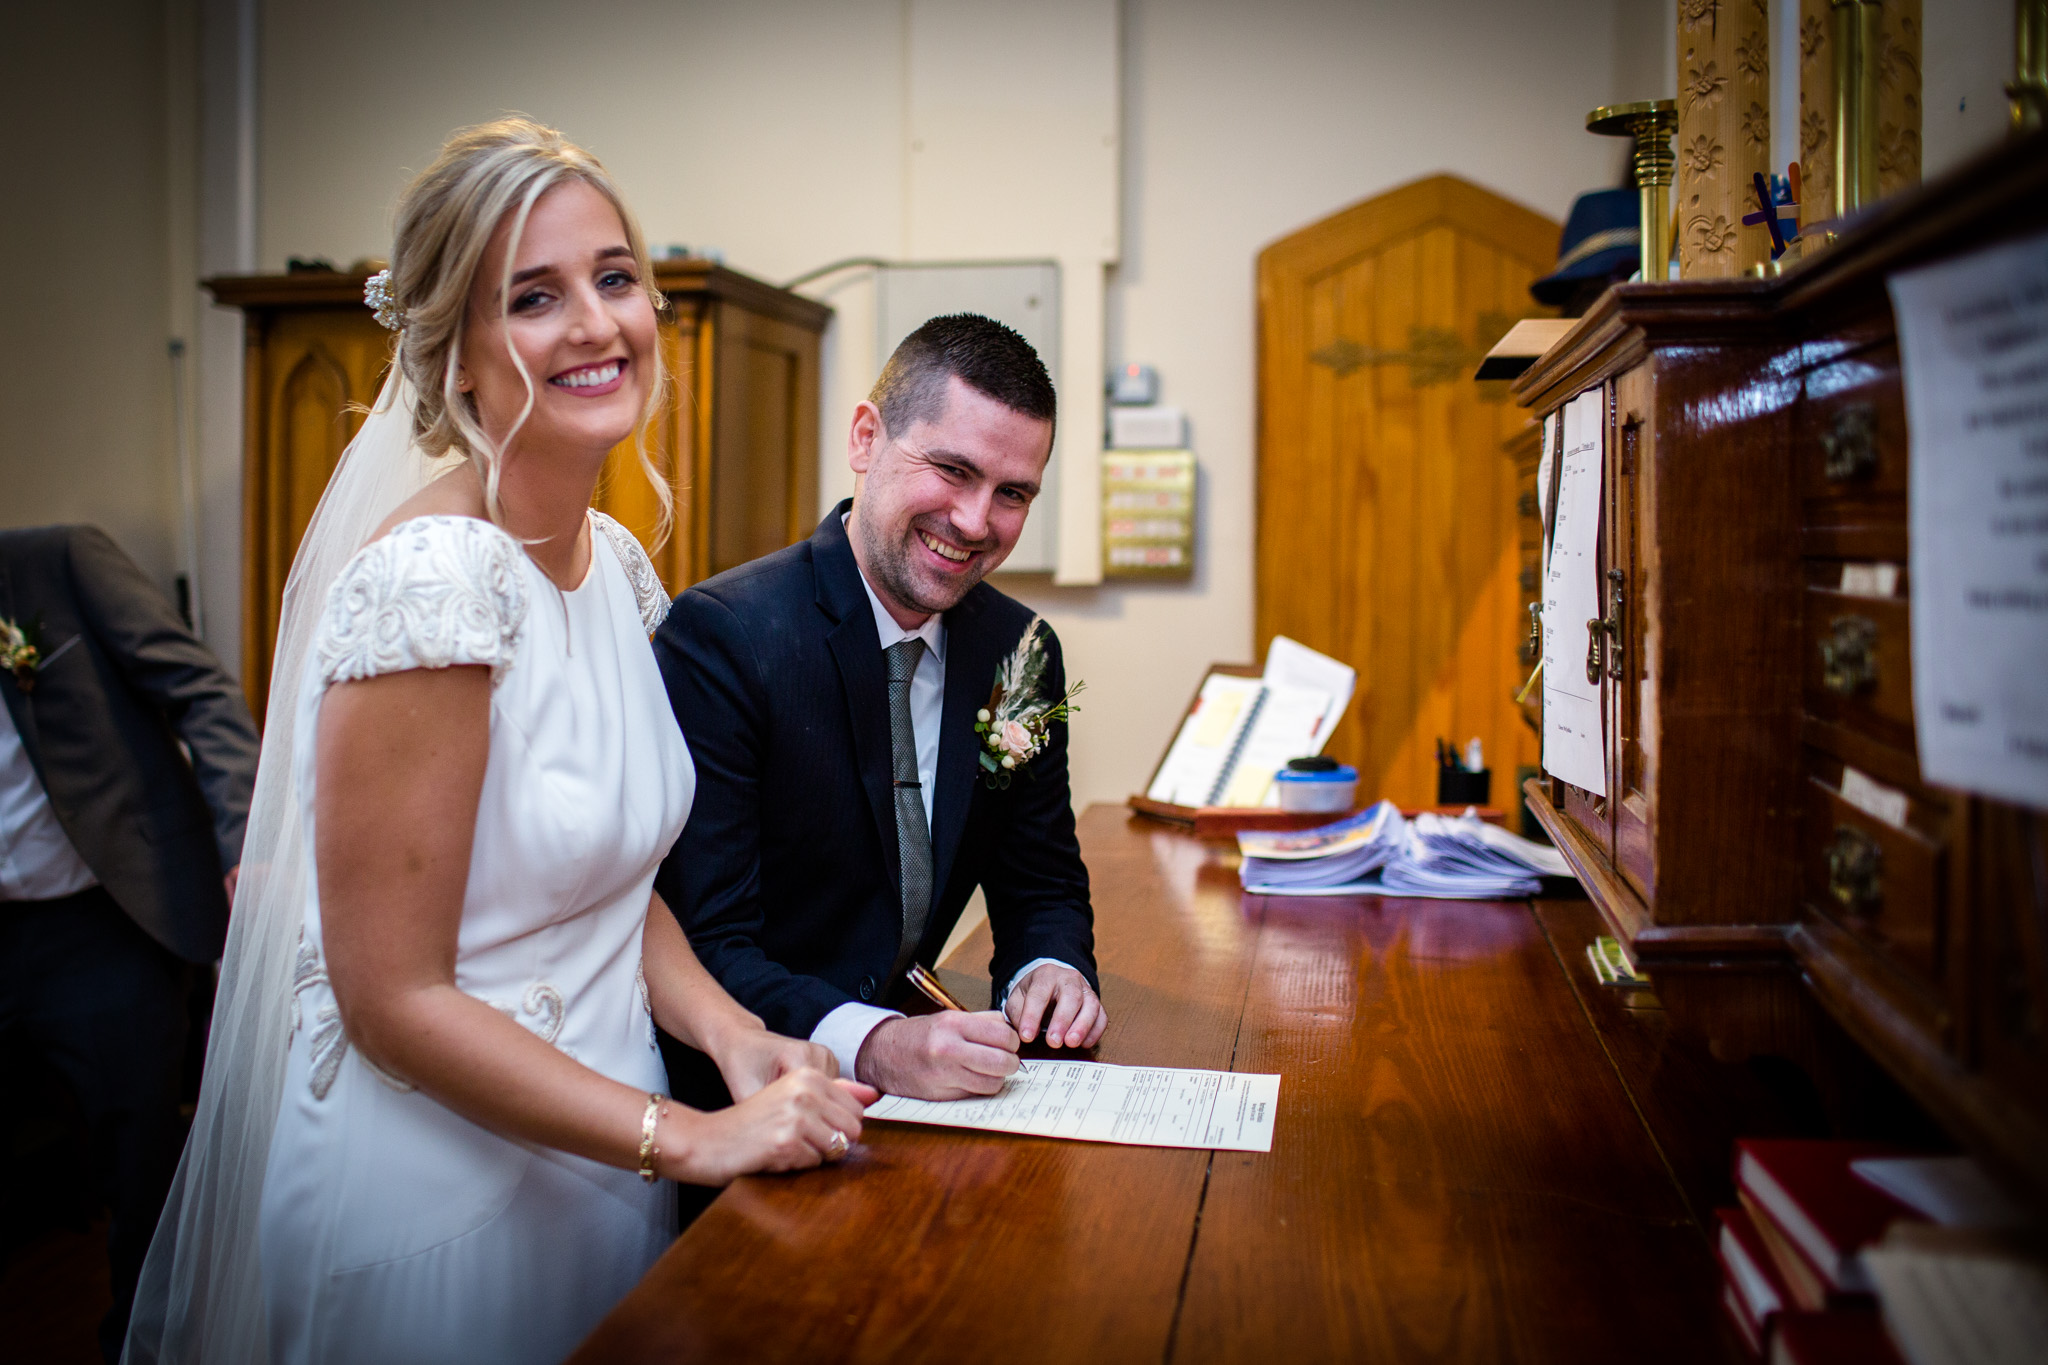 Mark_Barnes_Northern_Ireland_Wedding_Photography_Ballyscullion_Park_Wedding_Photography_Stef&Bobby-24.jpg